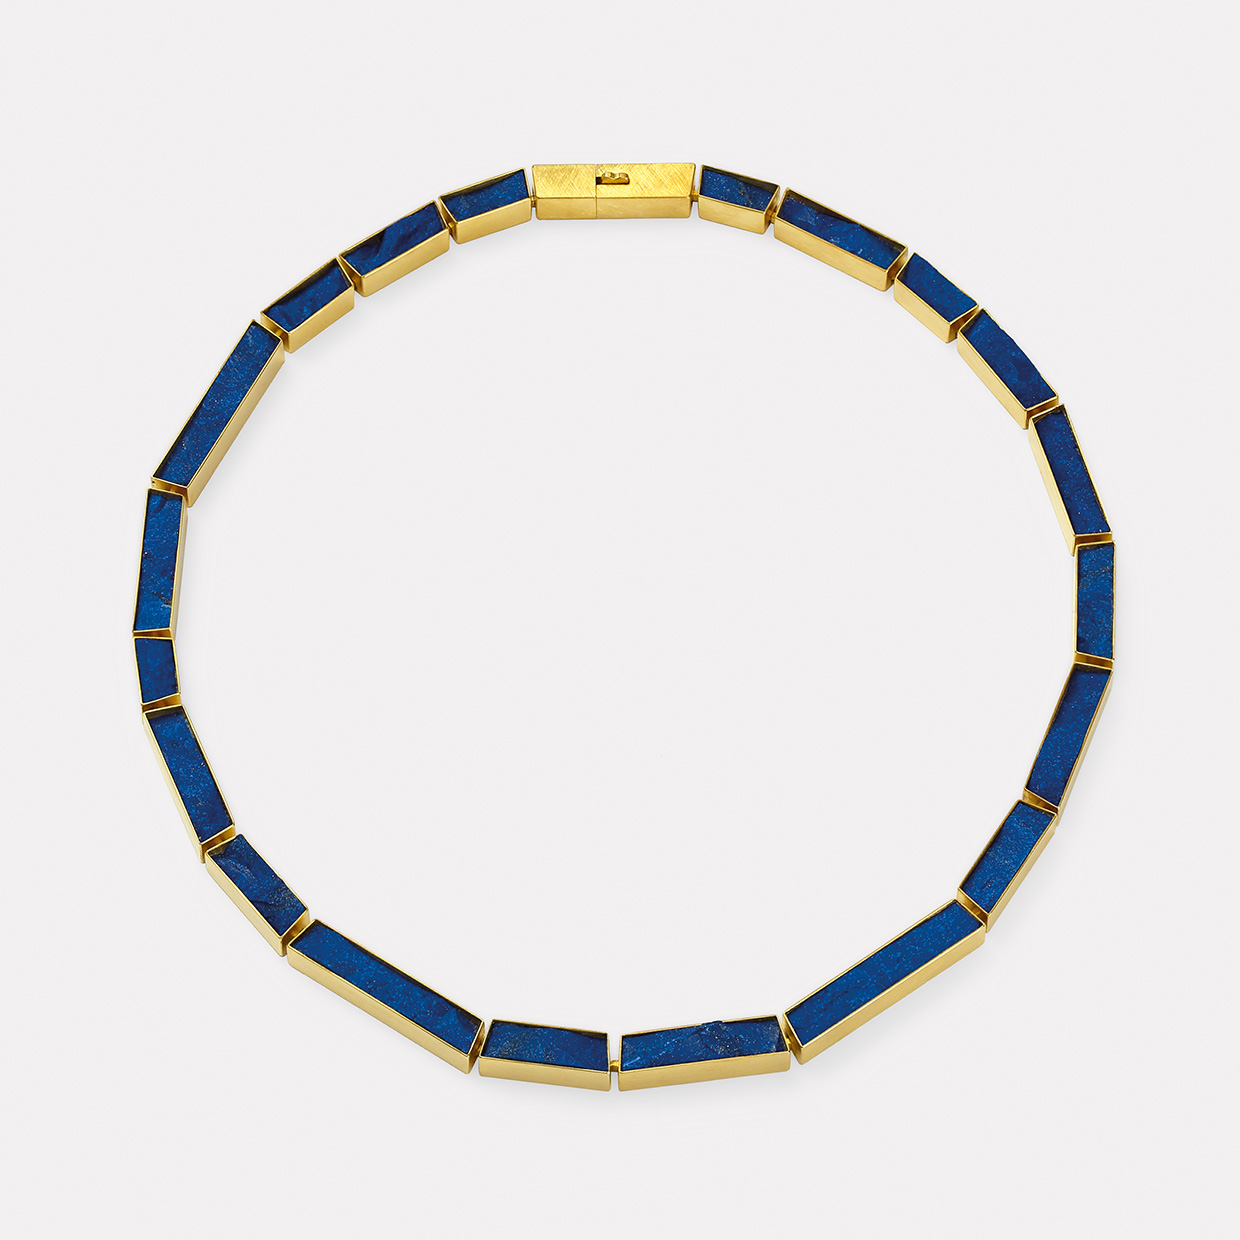 necklace  2019  gold  750  lapislazuli  478x7  mm